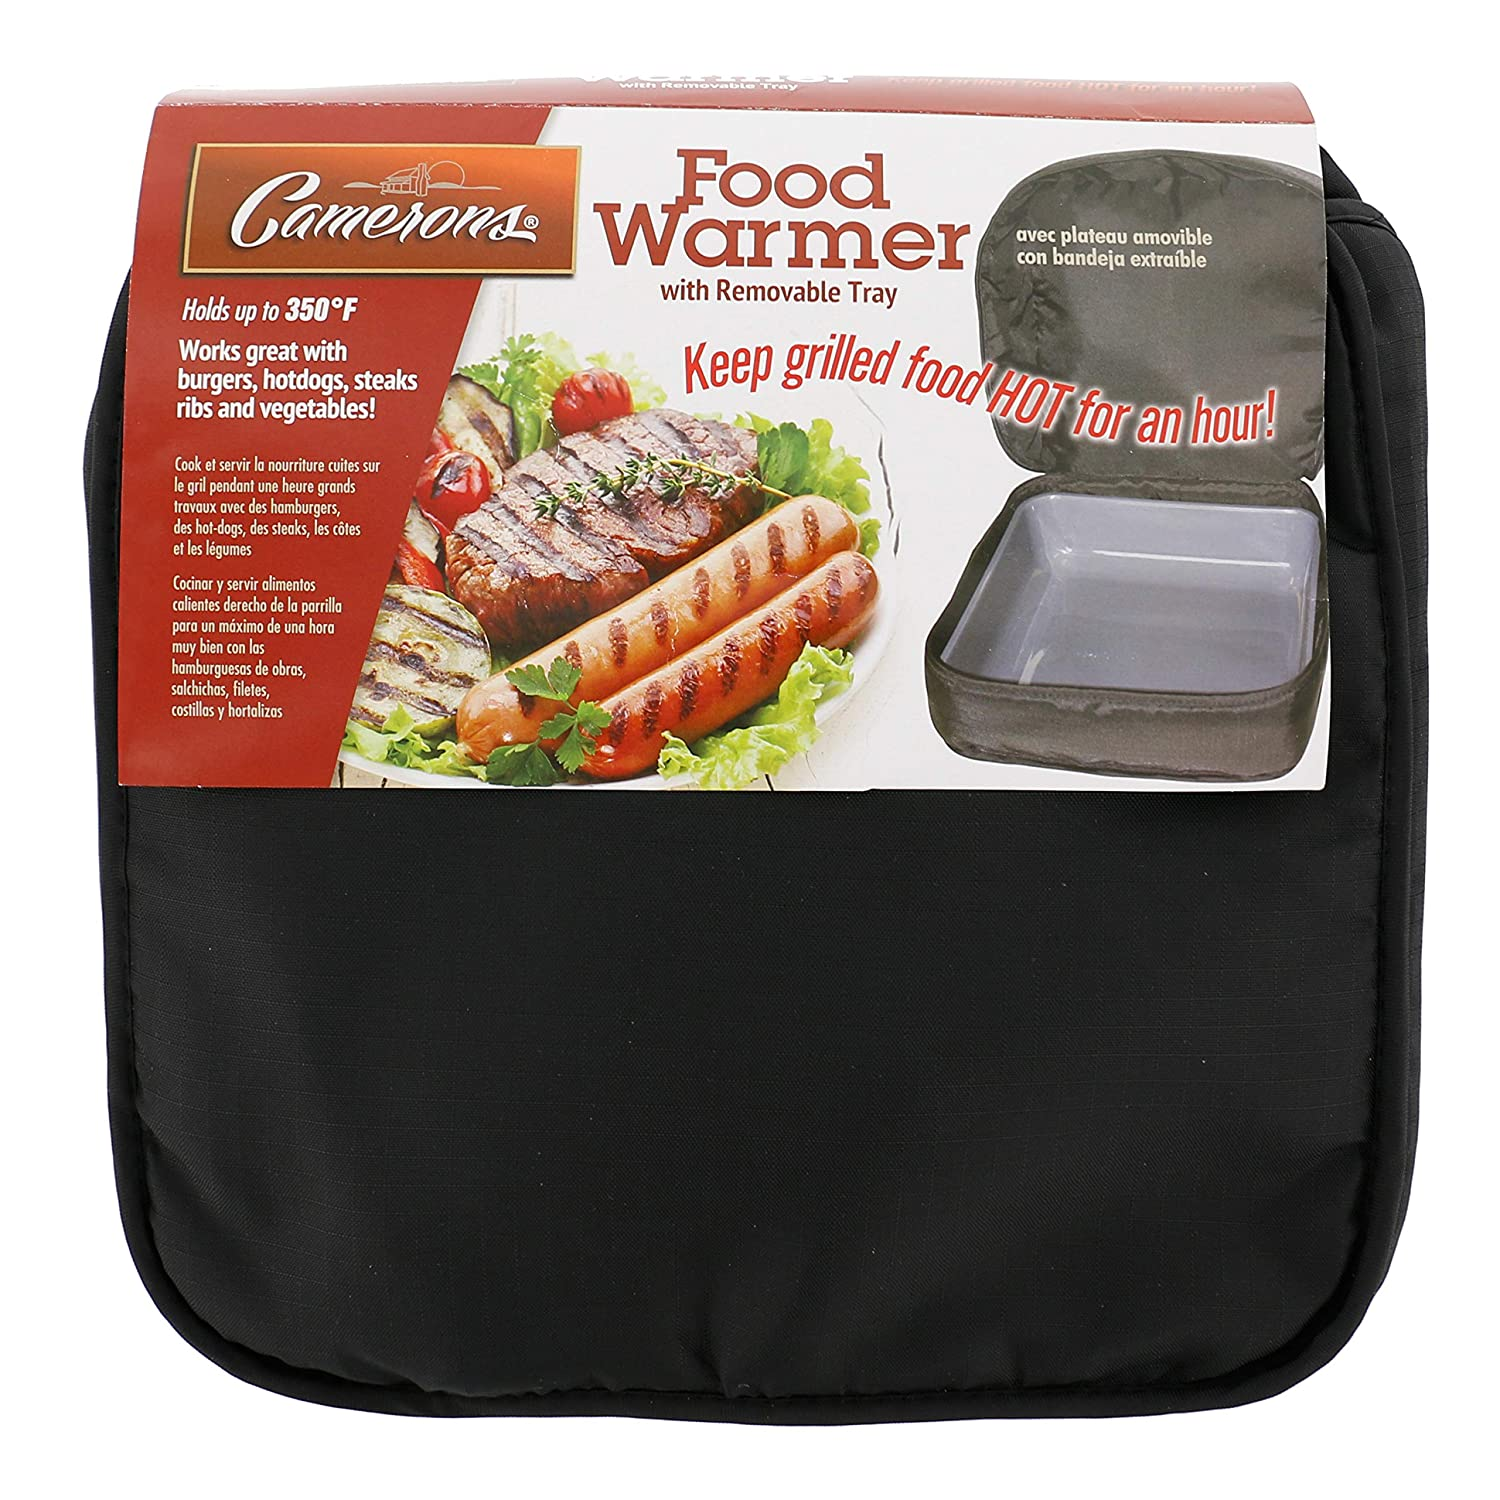 Grill Warmer with Built In Serving Dish - Keeps Food Hot for up to One Hour